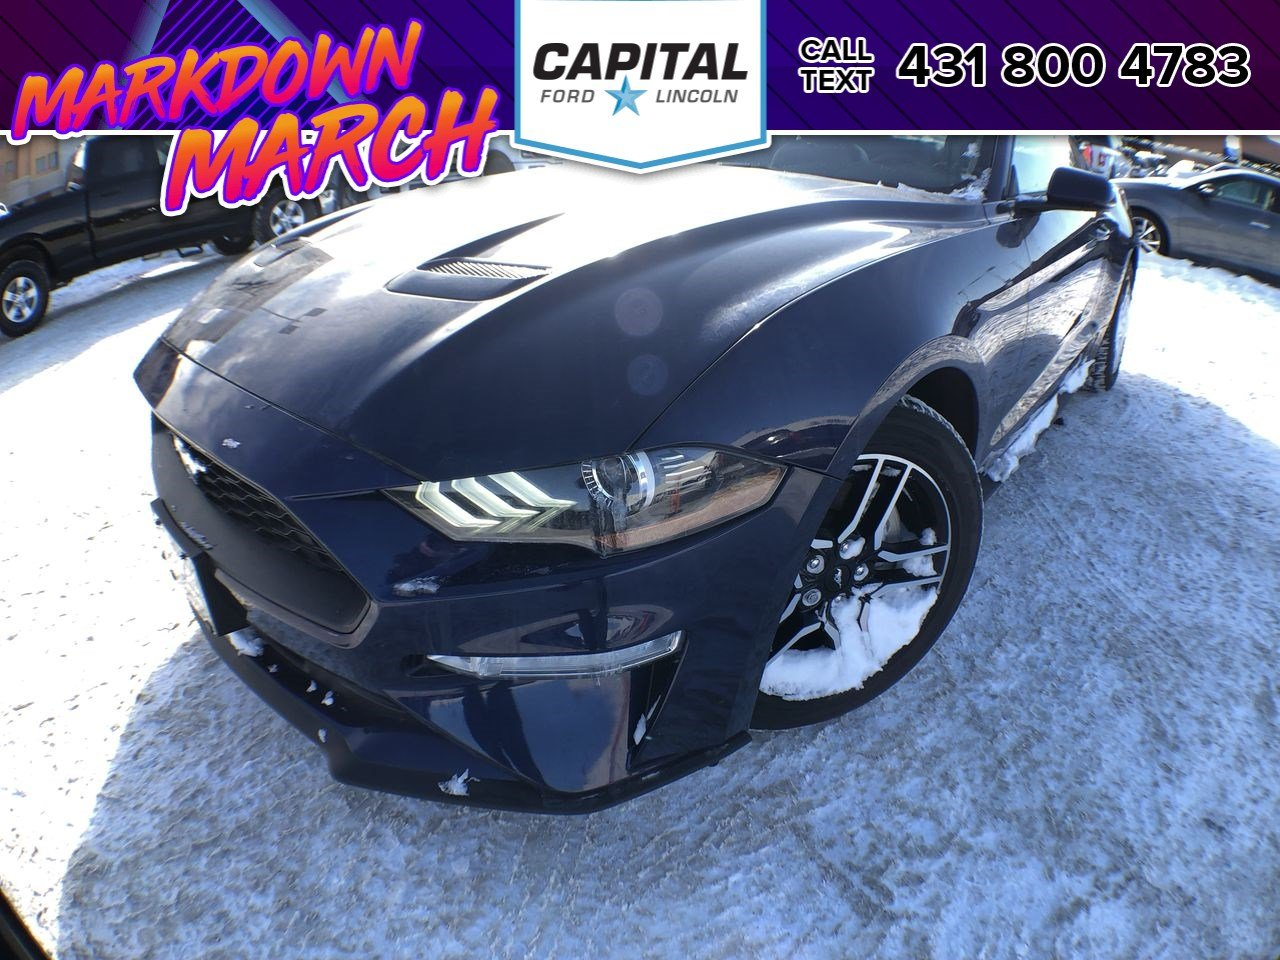 New 2018 Ford Mustang $7 000 savings! EcoBoost Premium*Navigation*Leather*6 spd Manual*